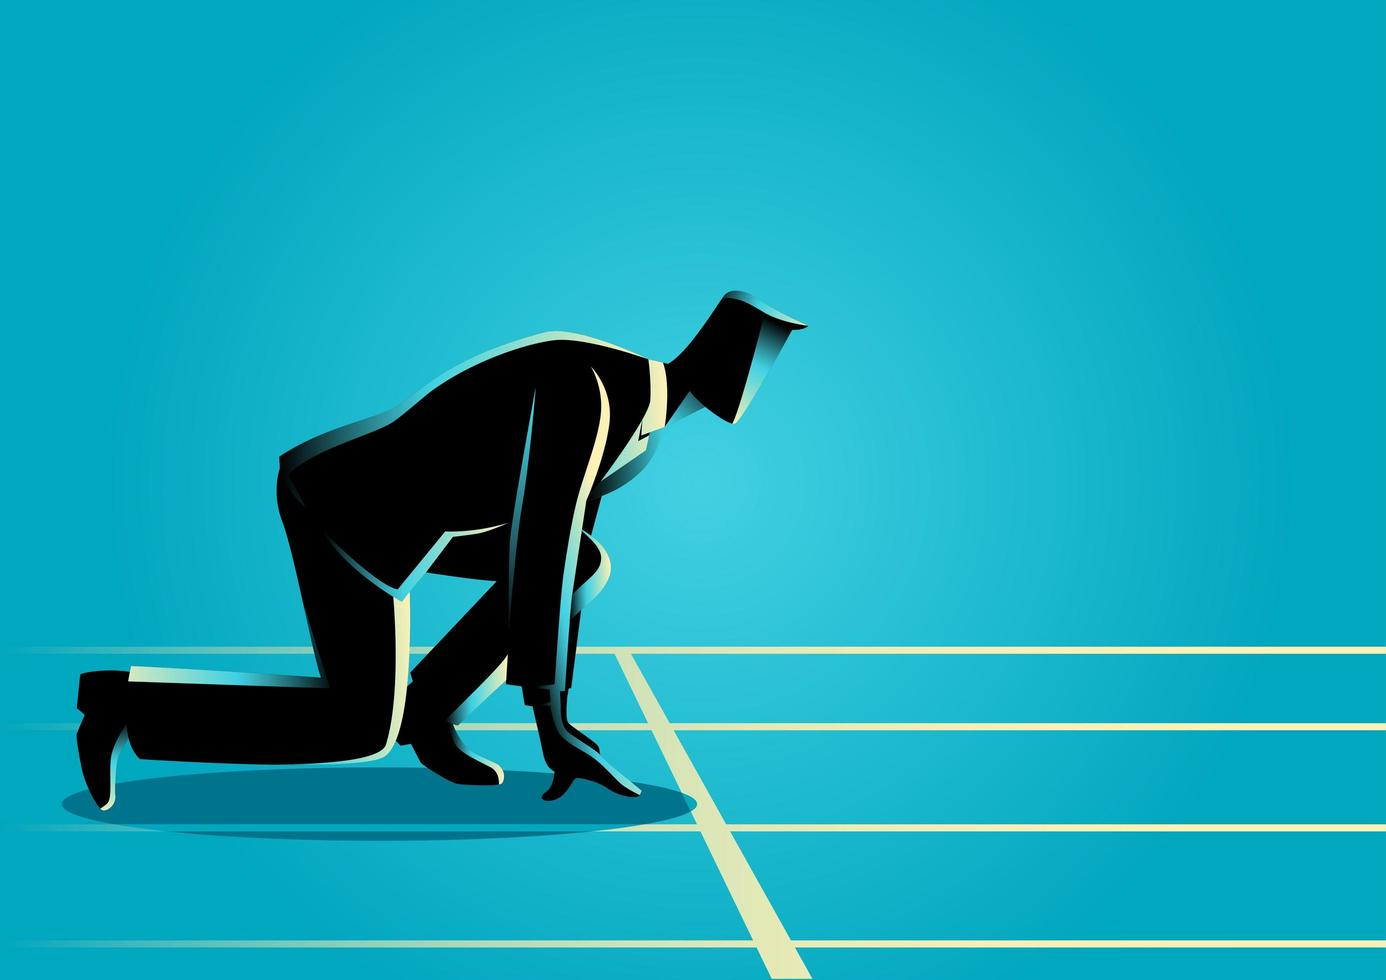 Businessman Silhouette Getting Ready to Sprint vector